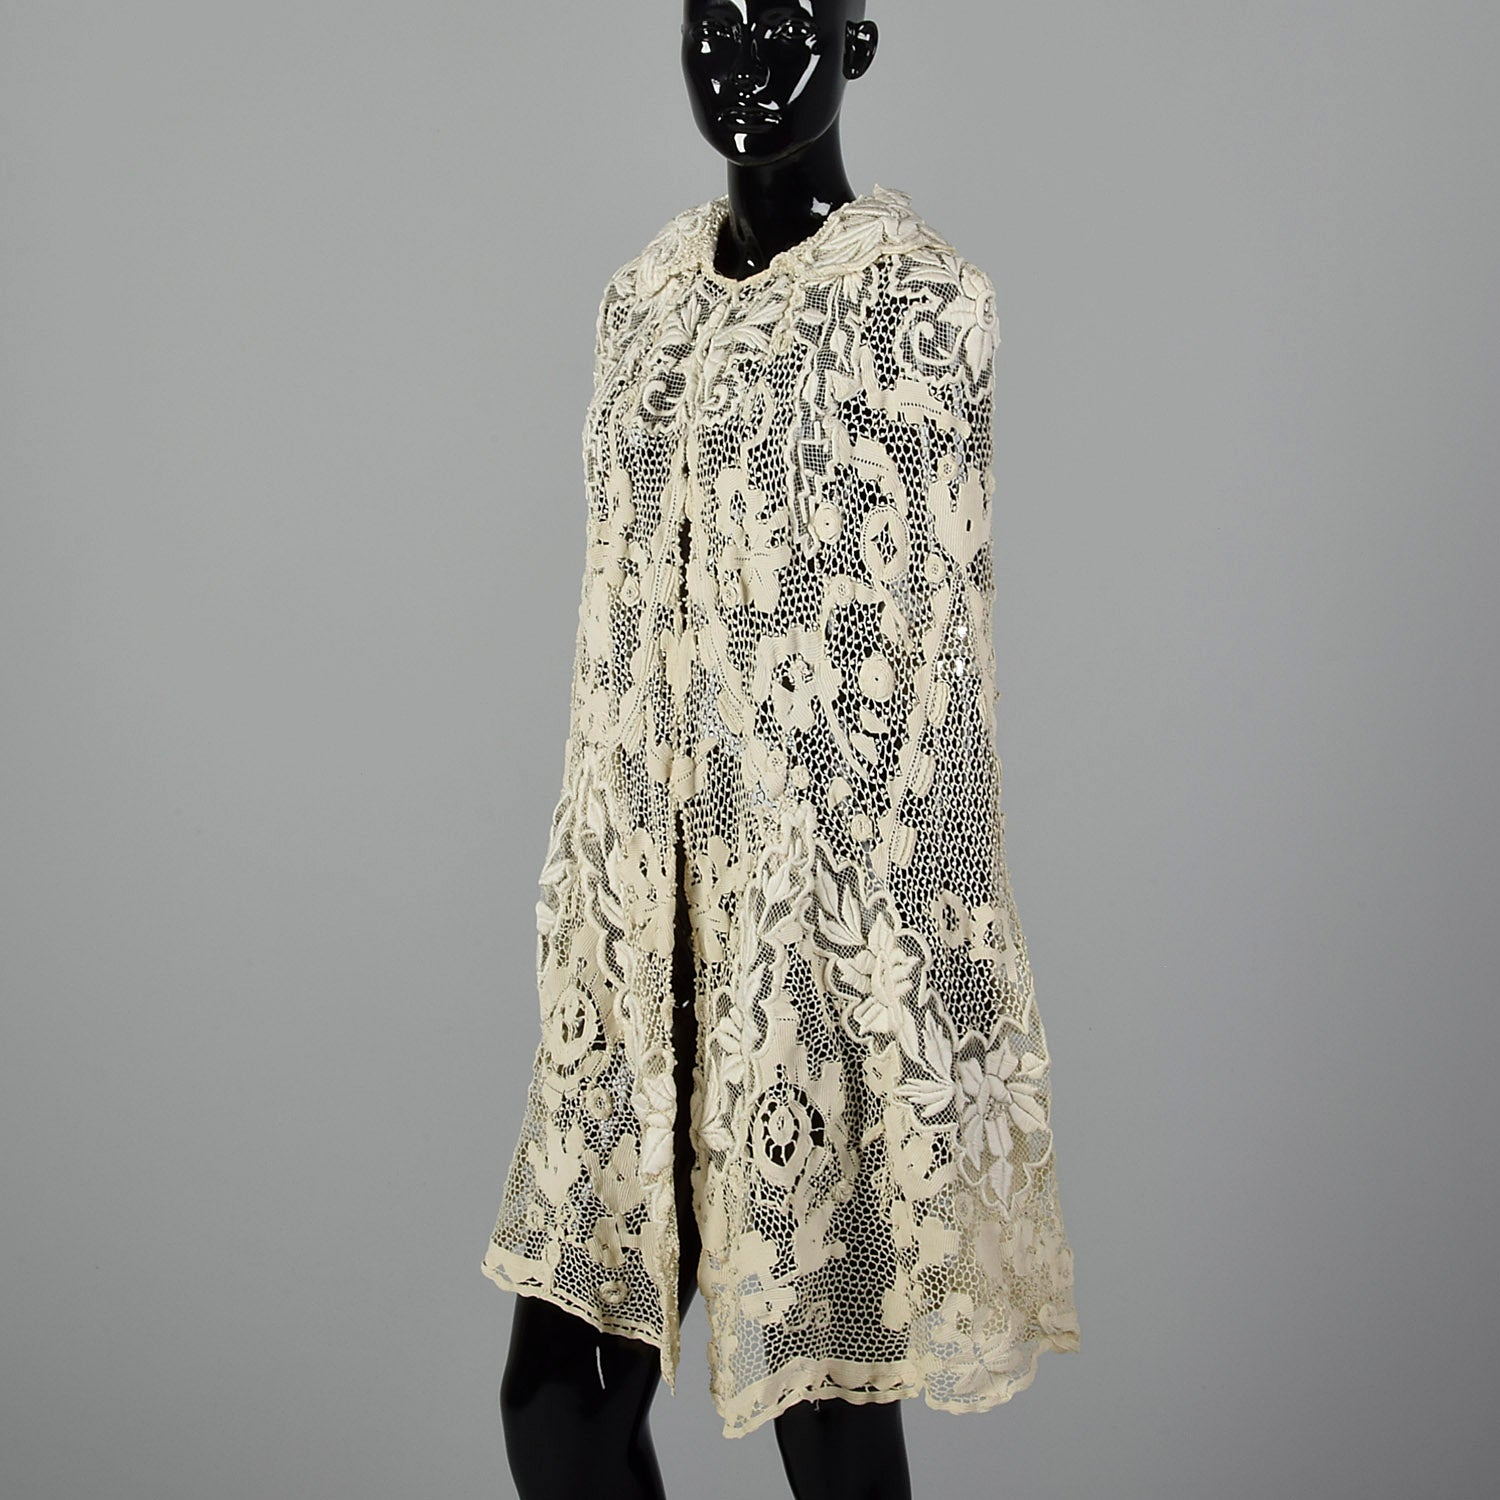 1910s Belle Epoque Antique Guipure Lace Cape